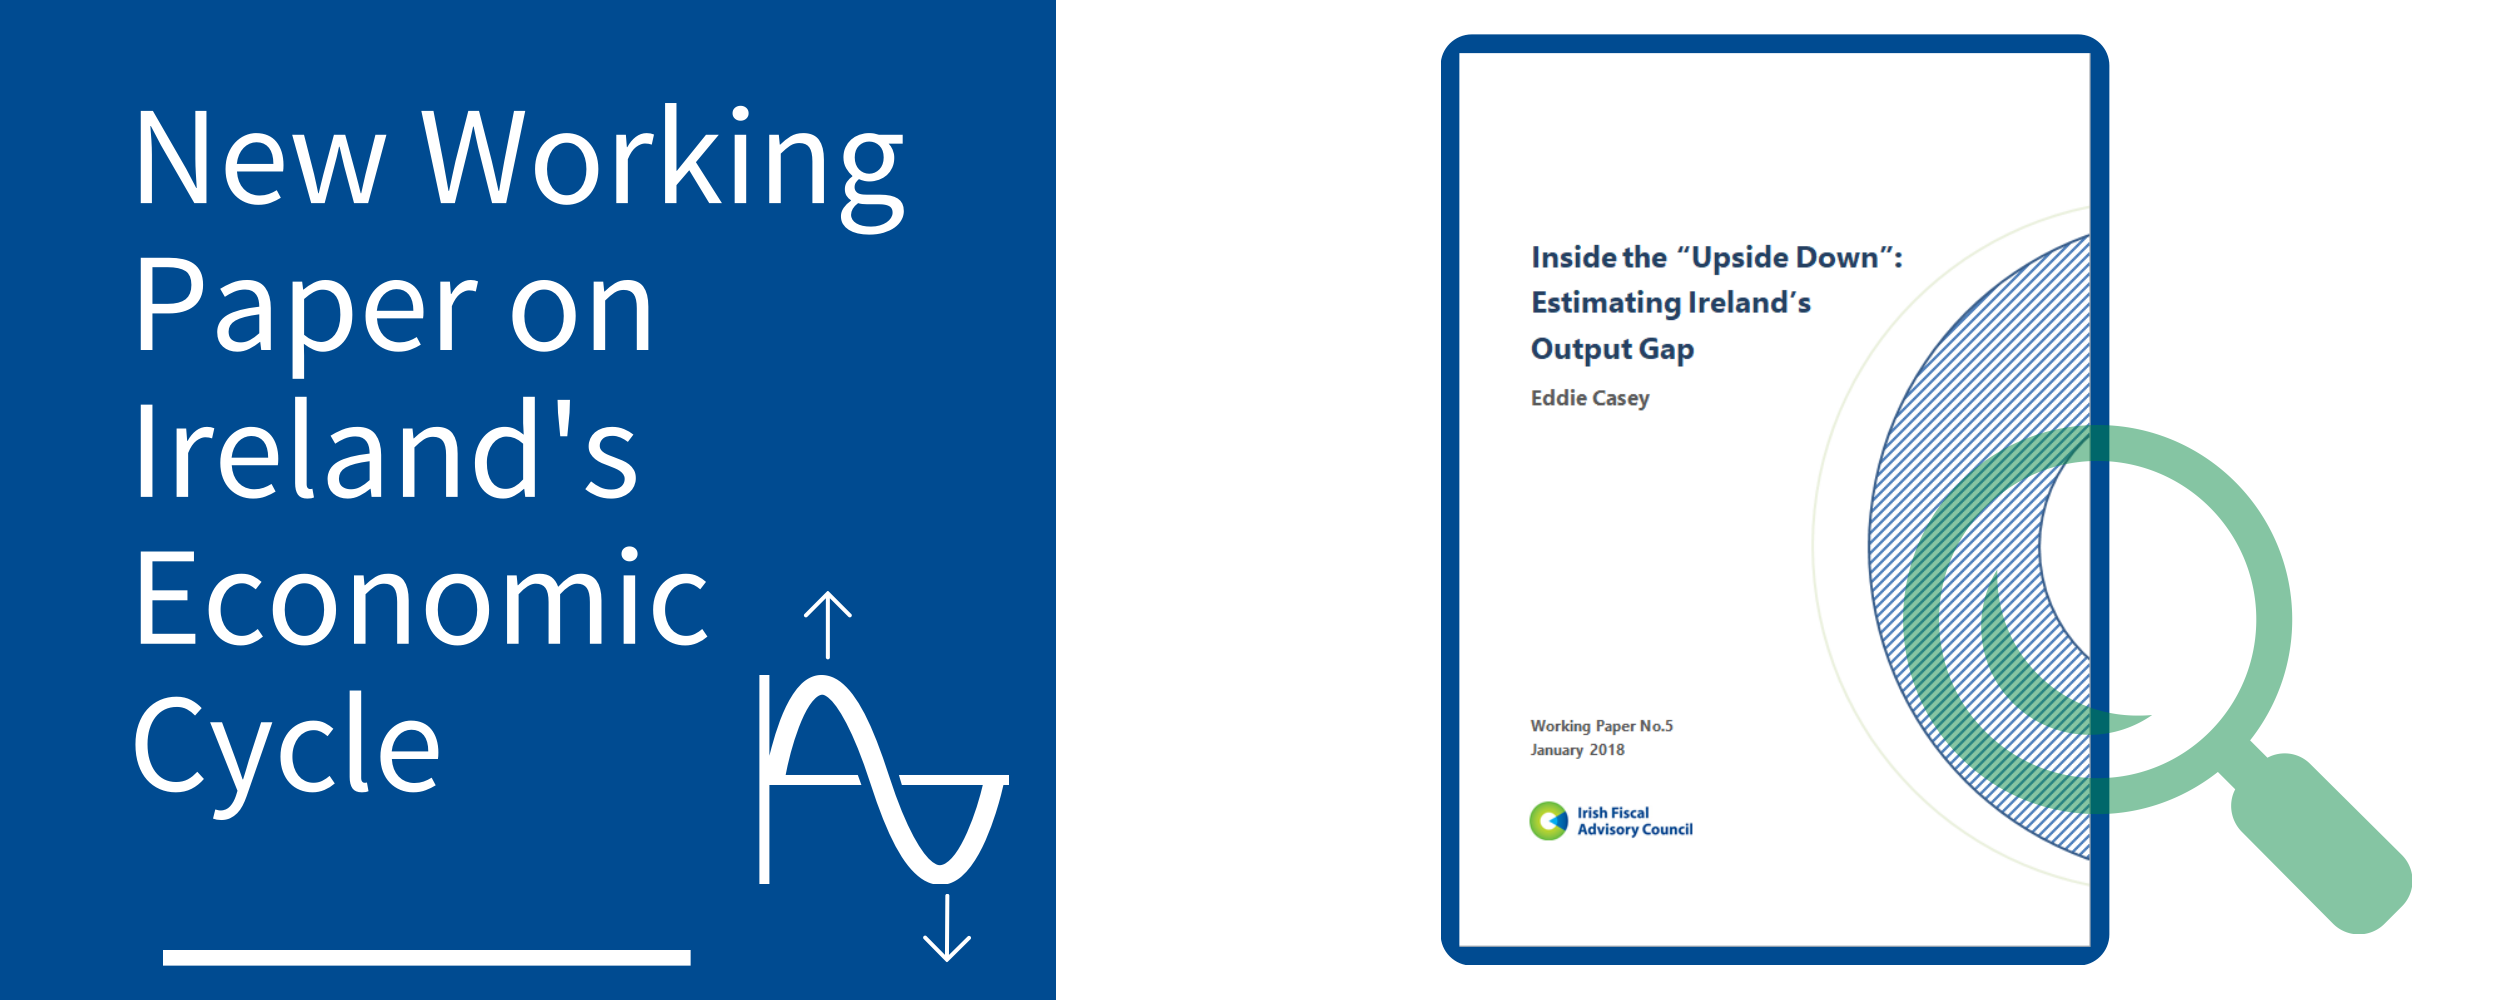 """New Working Paper on Ireland's Economic Cycle: """"Inside the 'Upside Down': Estimating Ireland's Output Gap"""""""